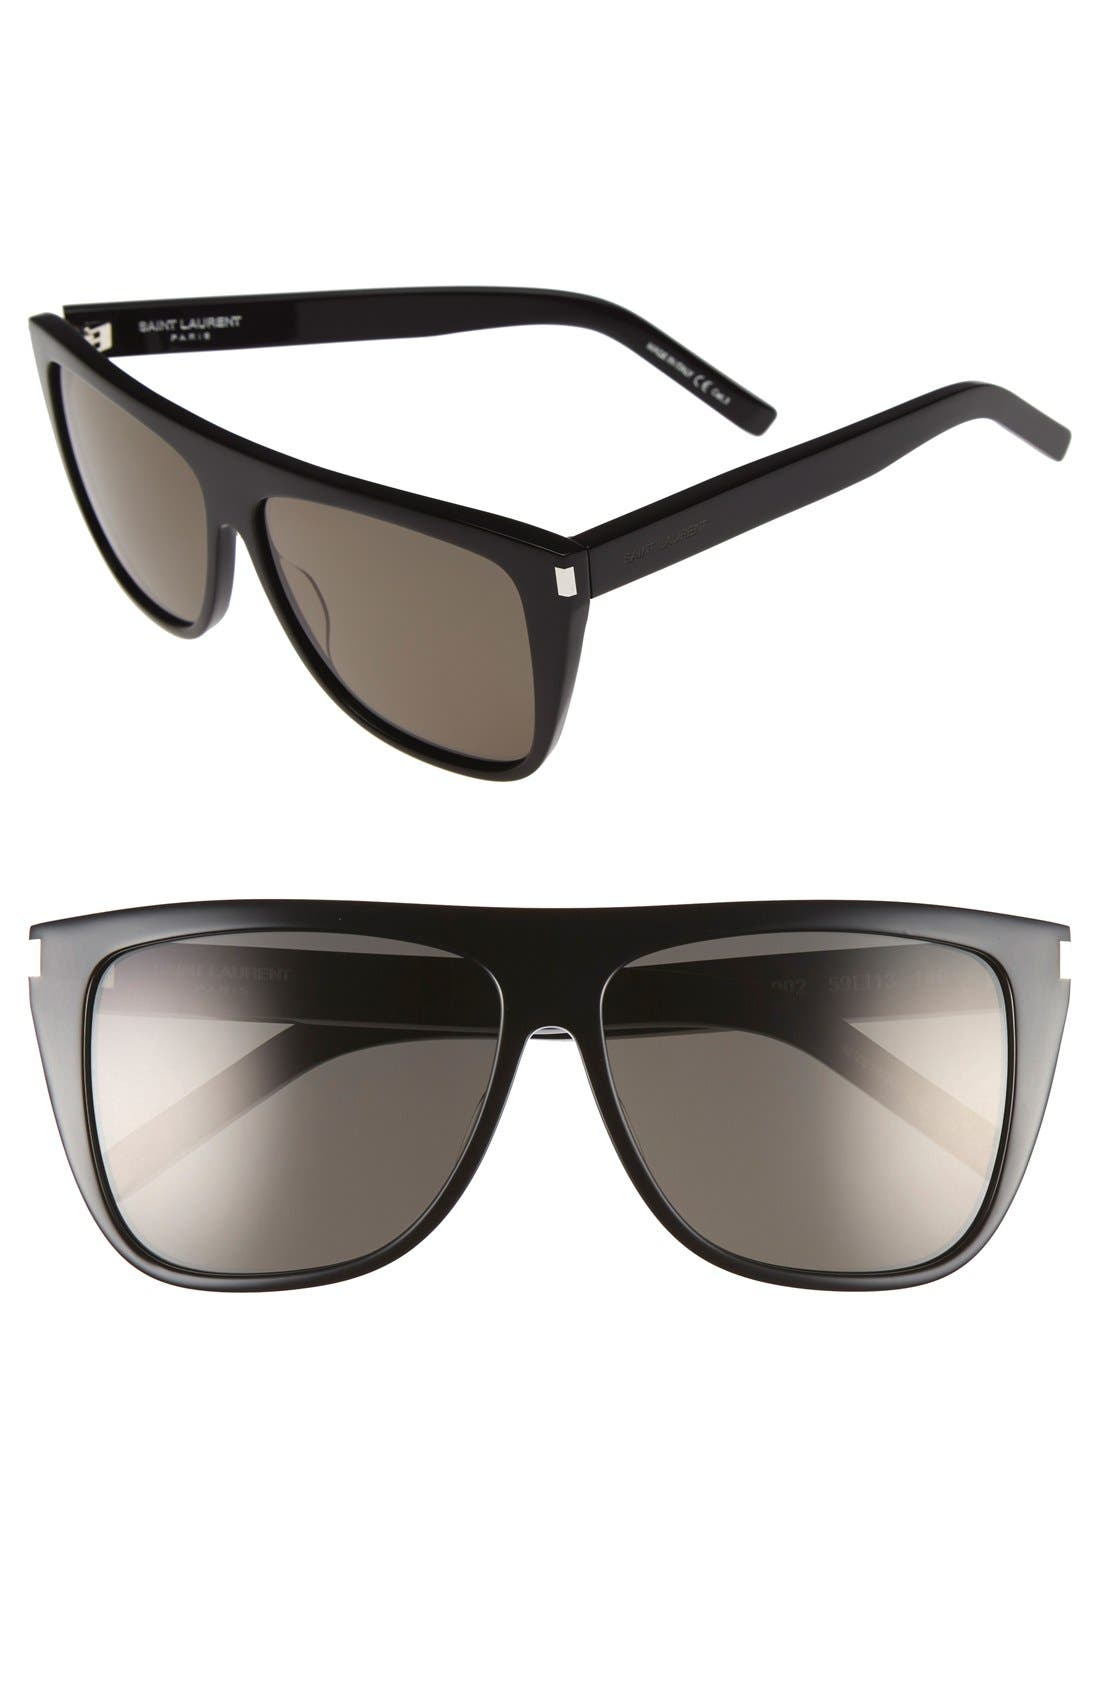 59mm Sunglasses,                             Main thumbnail 1, color,                             BLACK/ SMOKE